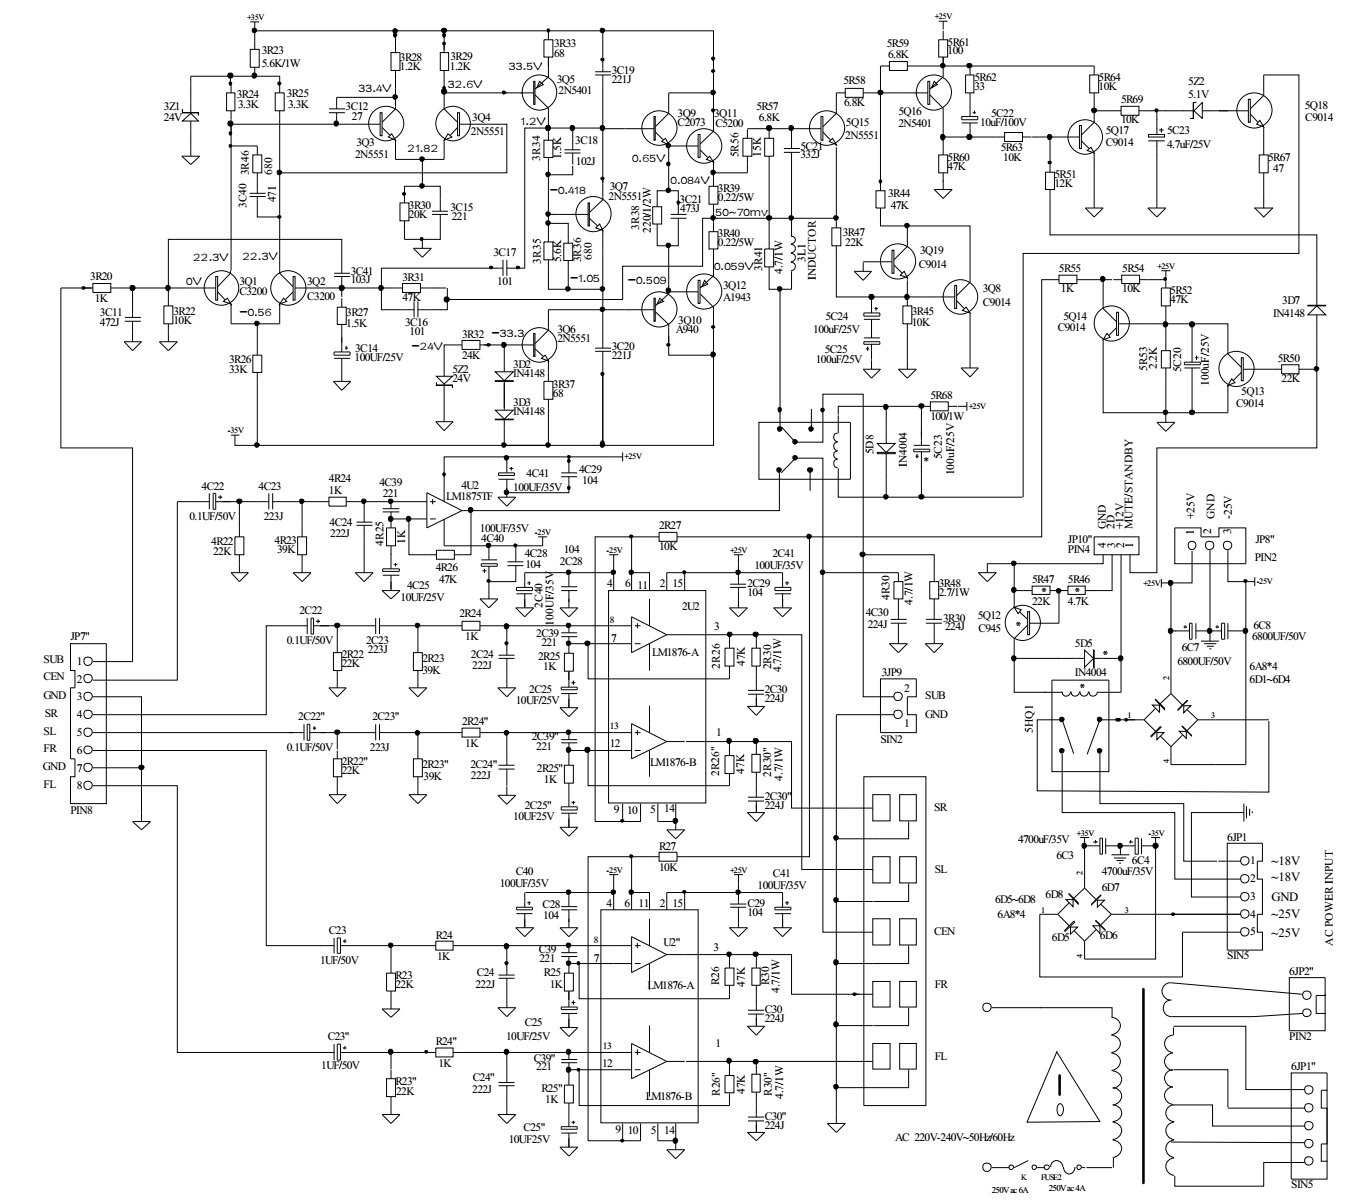 5 1 subwoofer circuit diagrams 25w subwoofer circuit diagrams